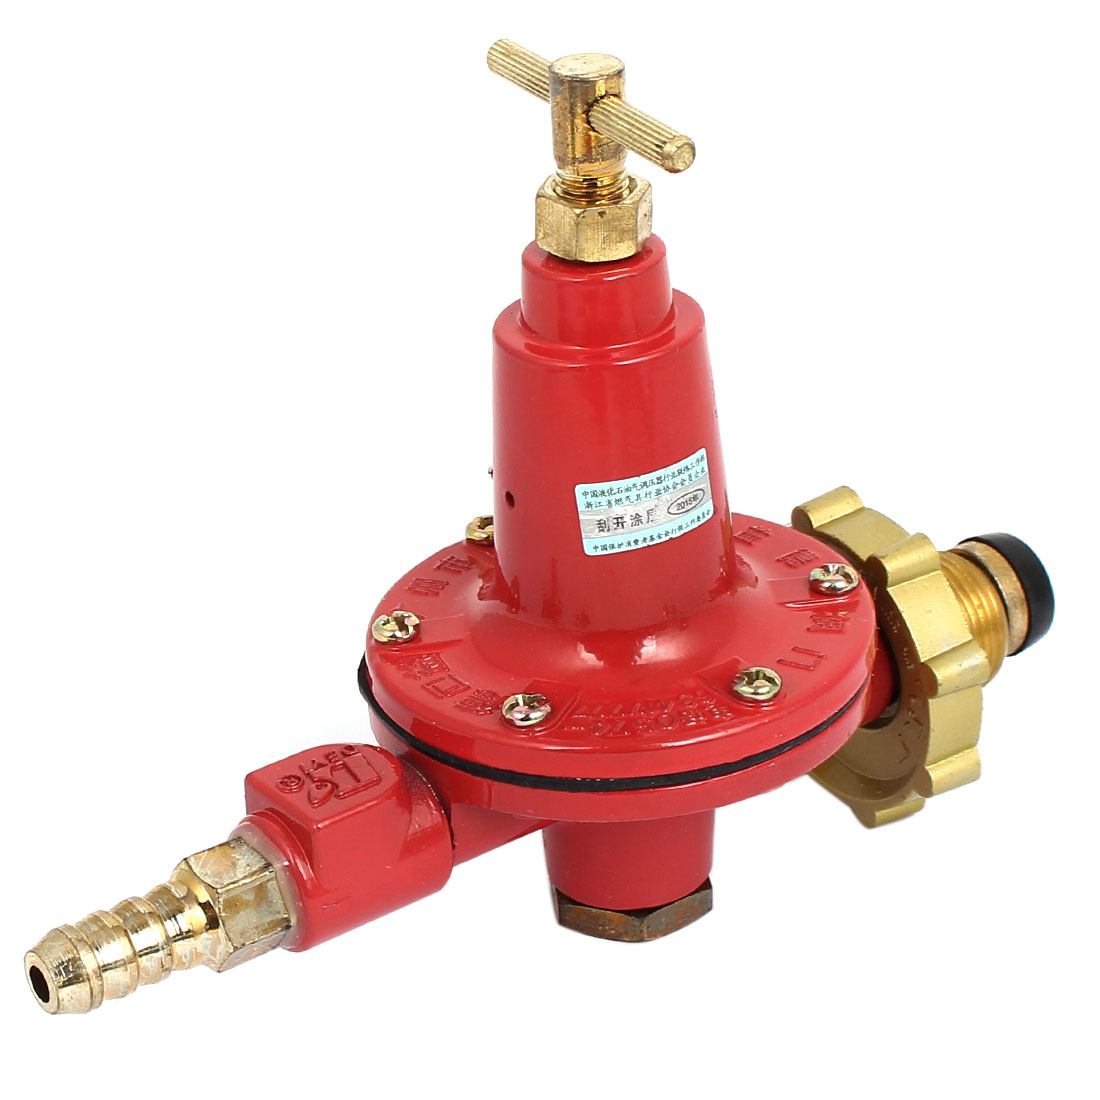 LGP Compressed Bottle Cylinder Gas Pressure Metallic Regulator Valve Red